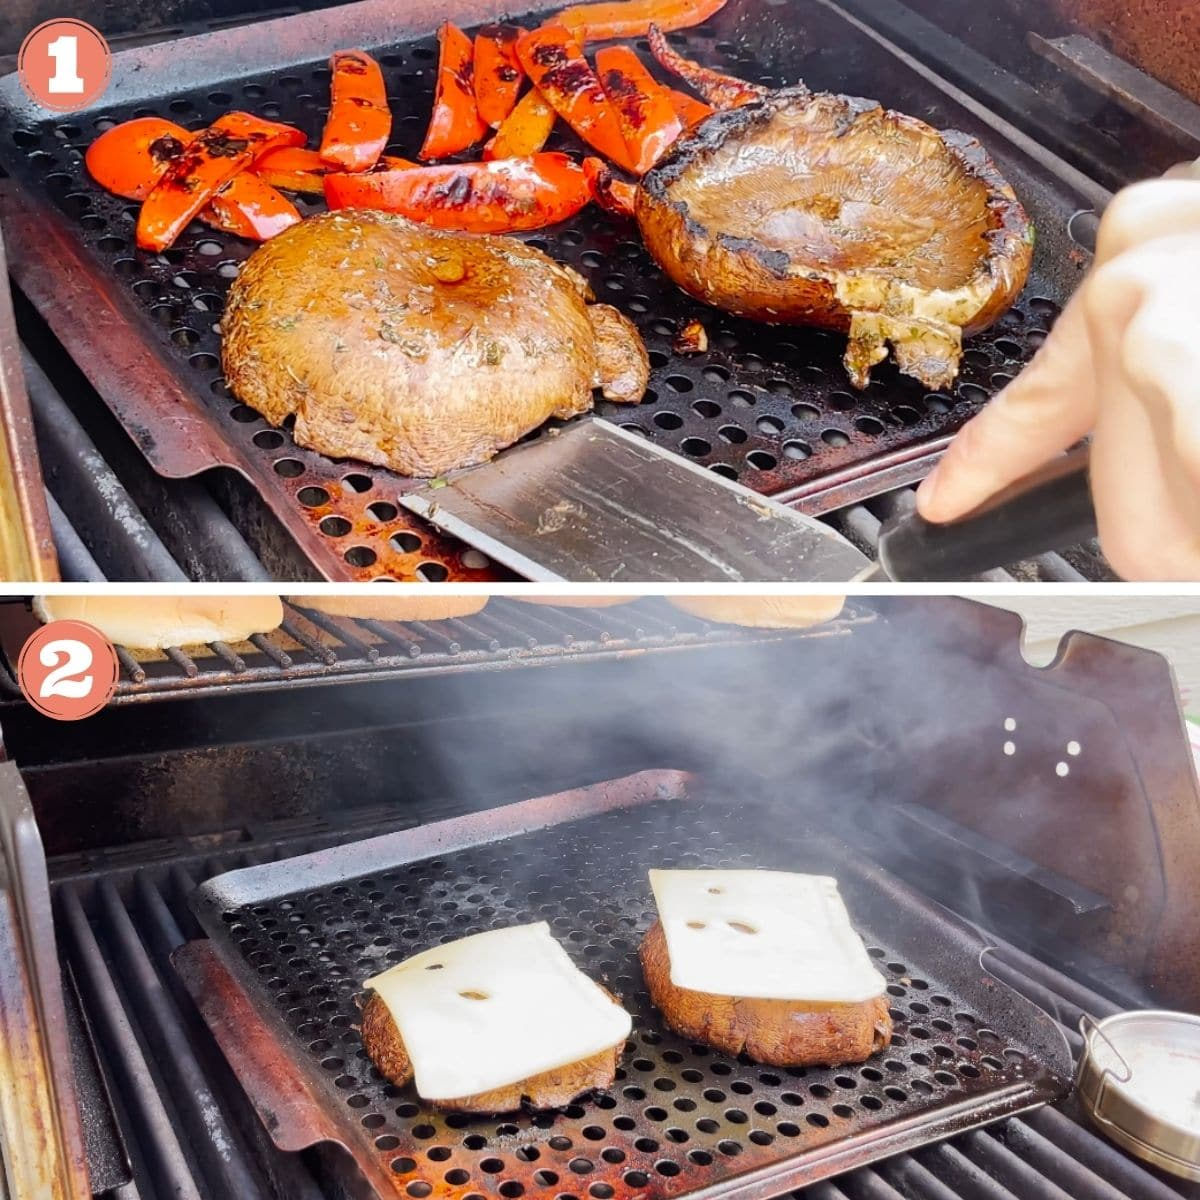 Steps 1 and 2 to grill mushrooms